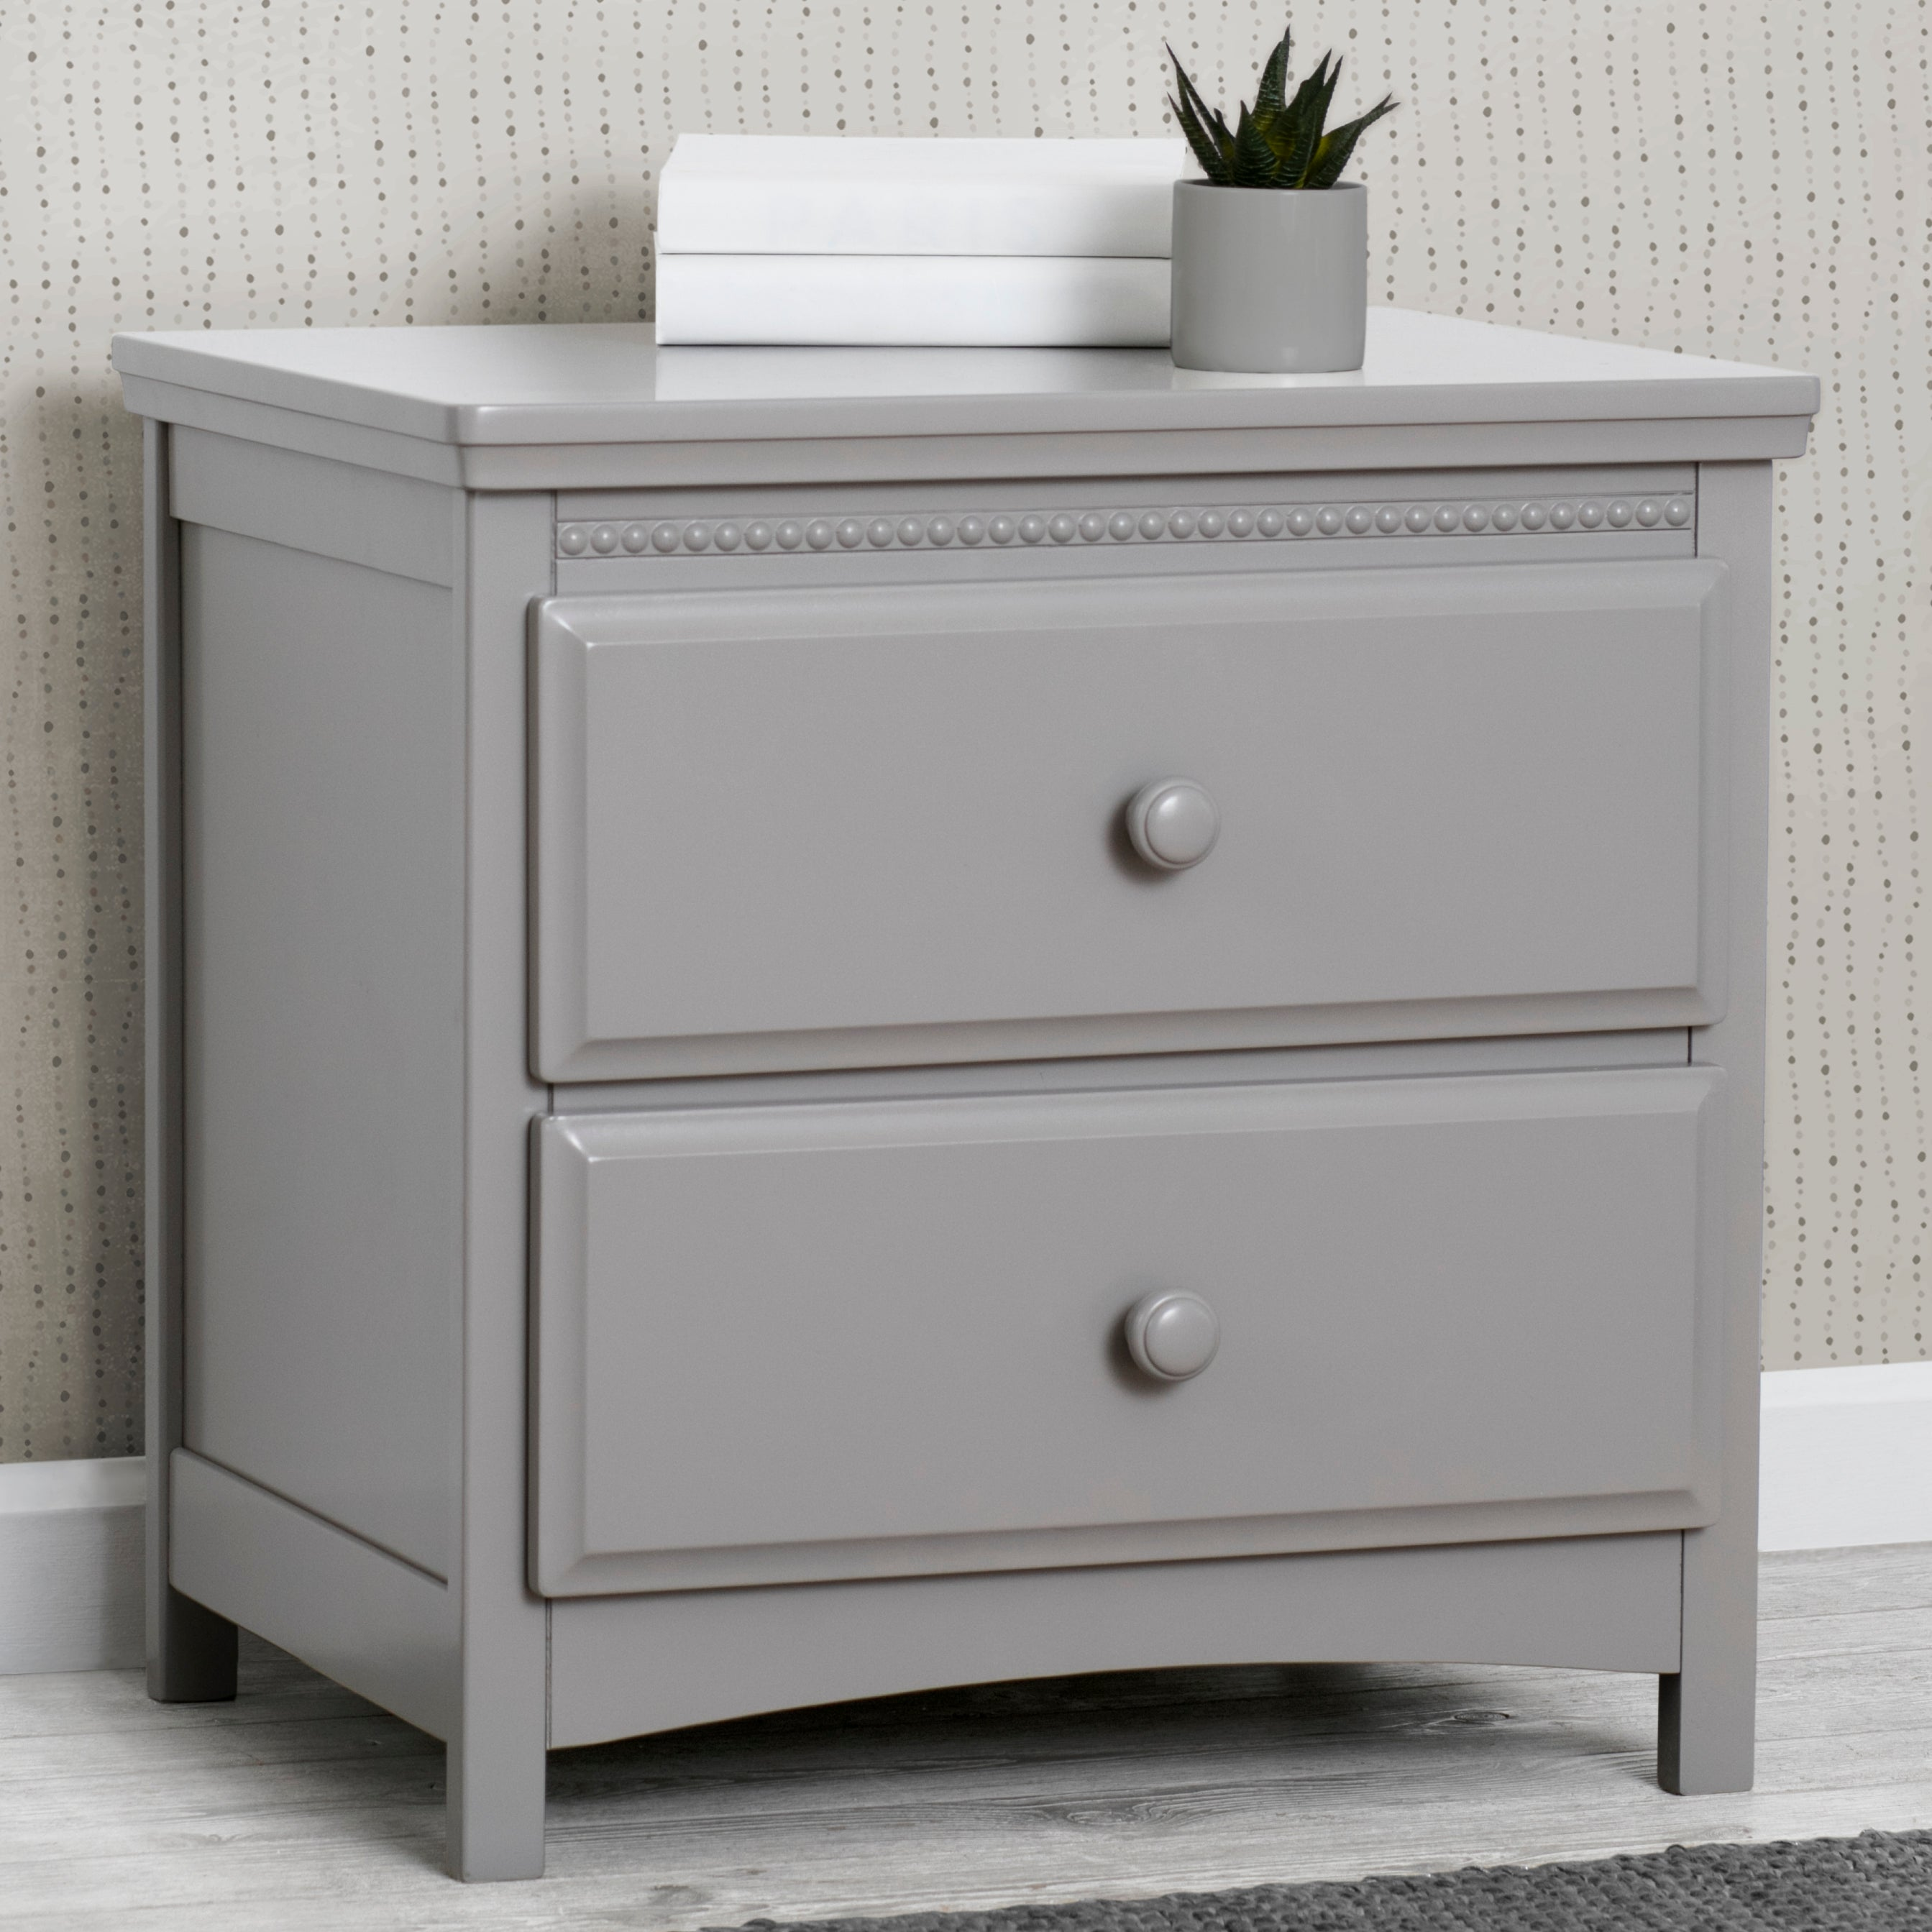 Emerson Nightstand Delta Children